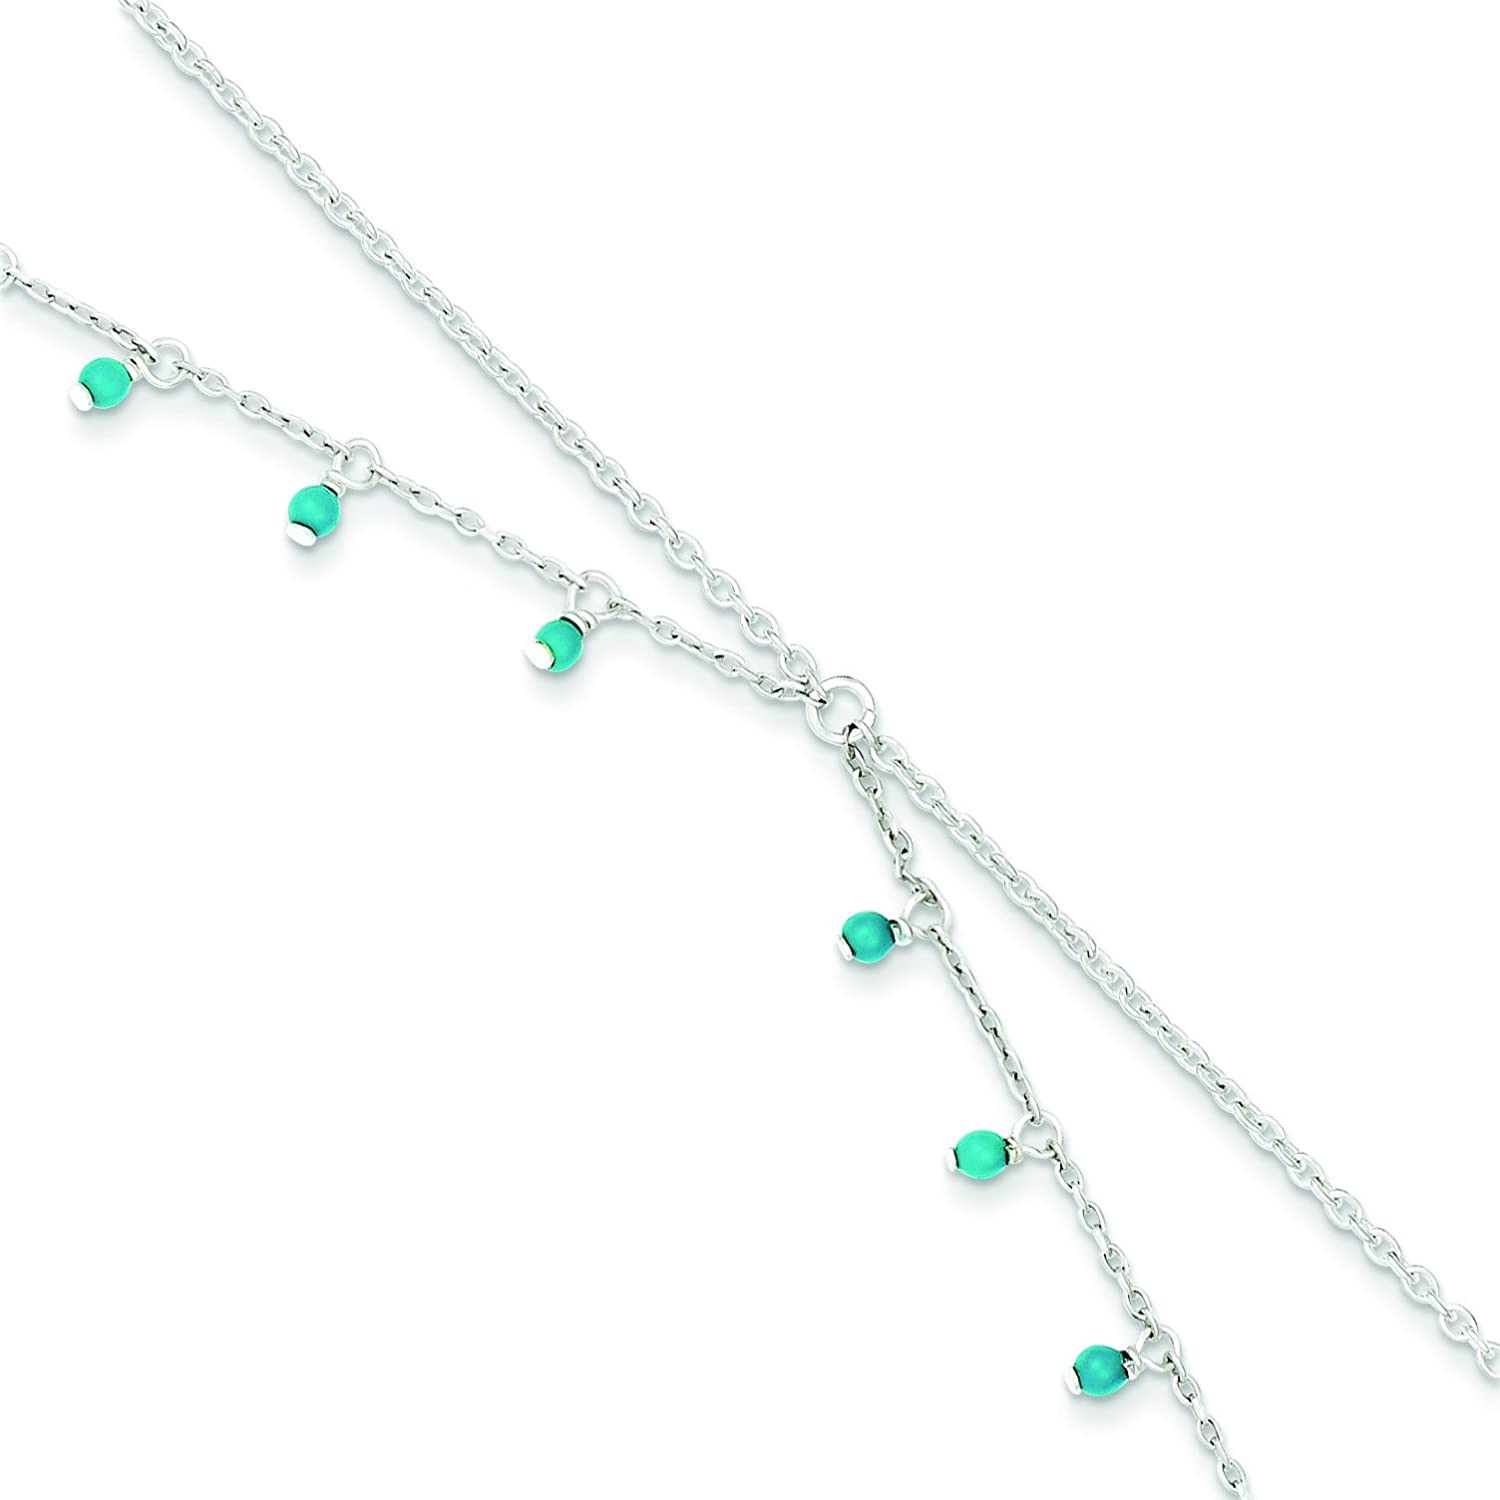 Sterling Silver Turquoise Double Chain Anklet Bracelet